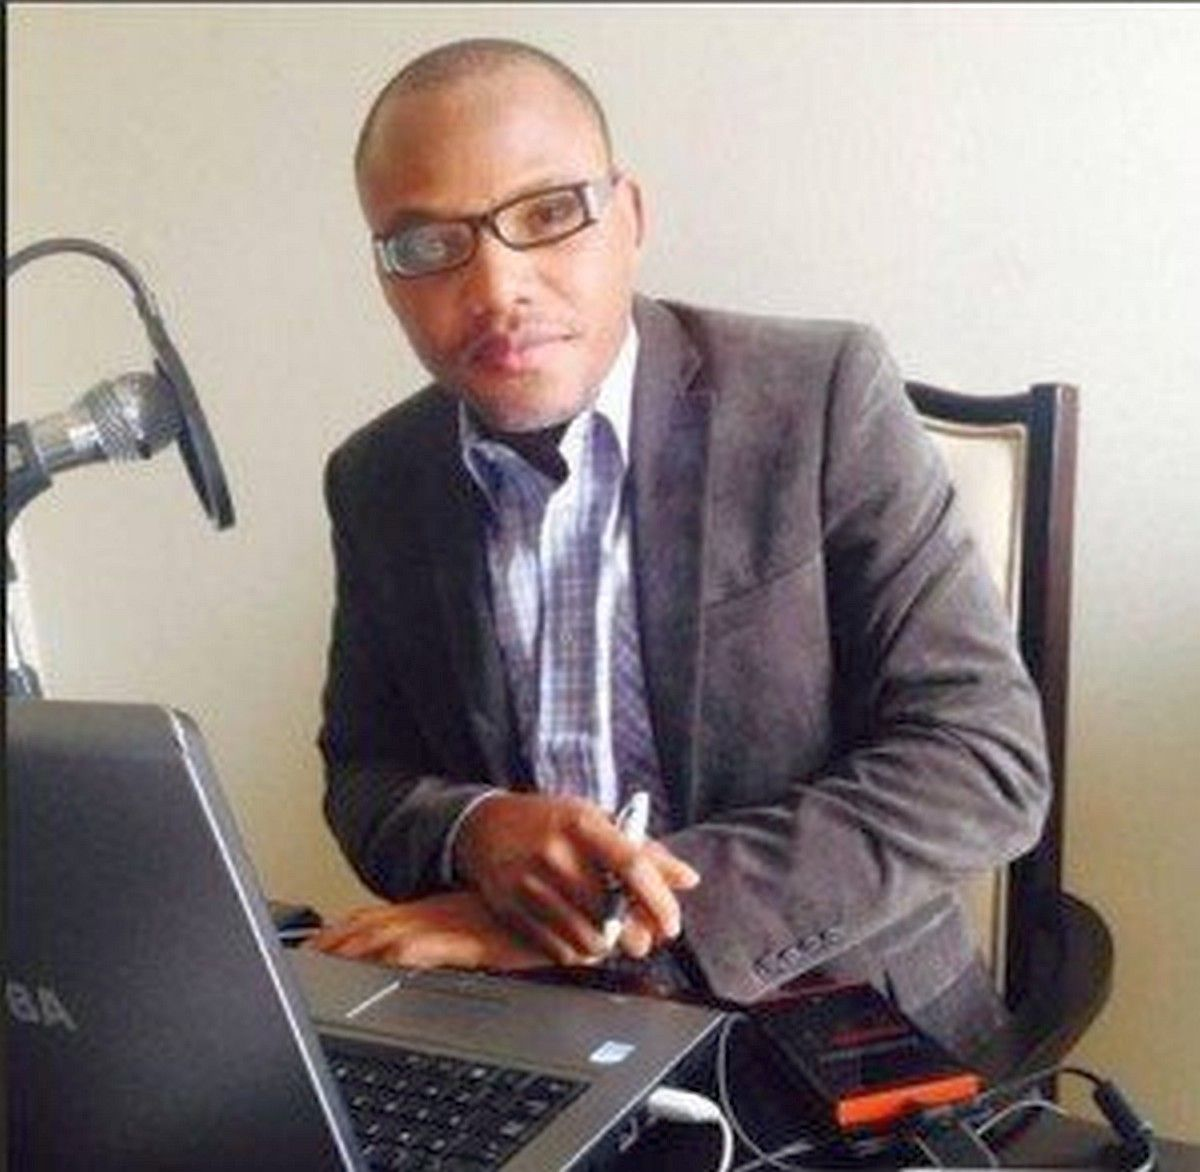 Court rejects Kanu's request for seized passports, money